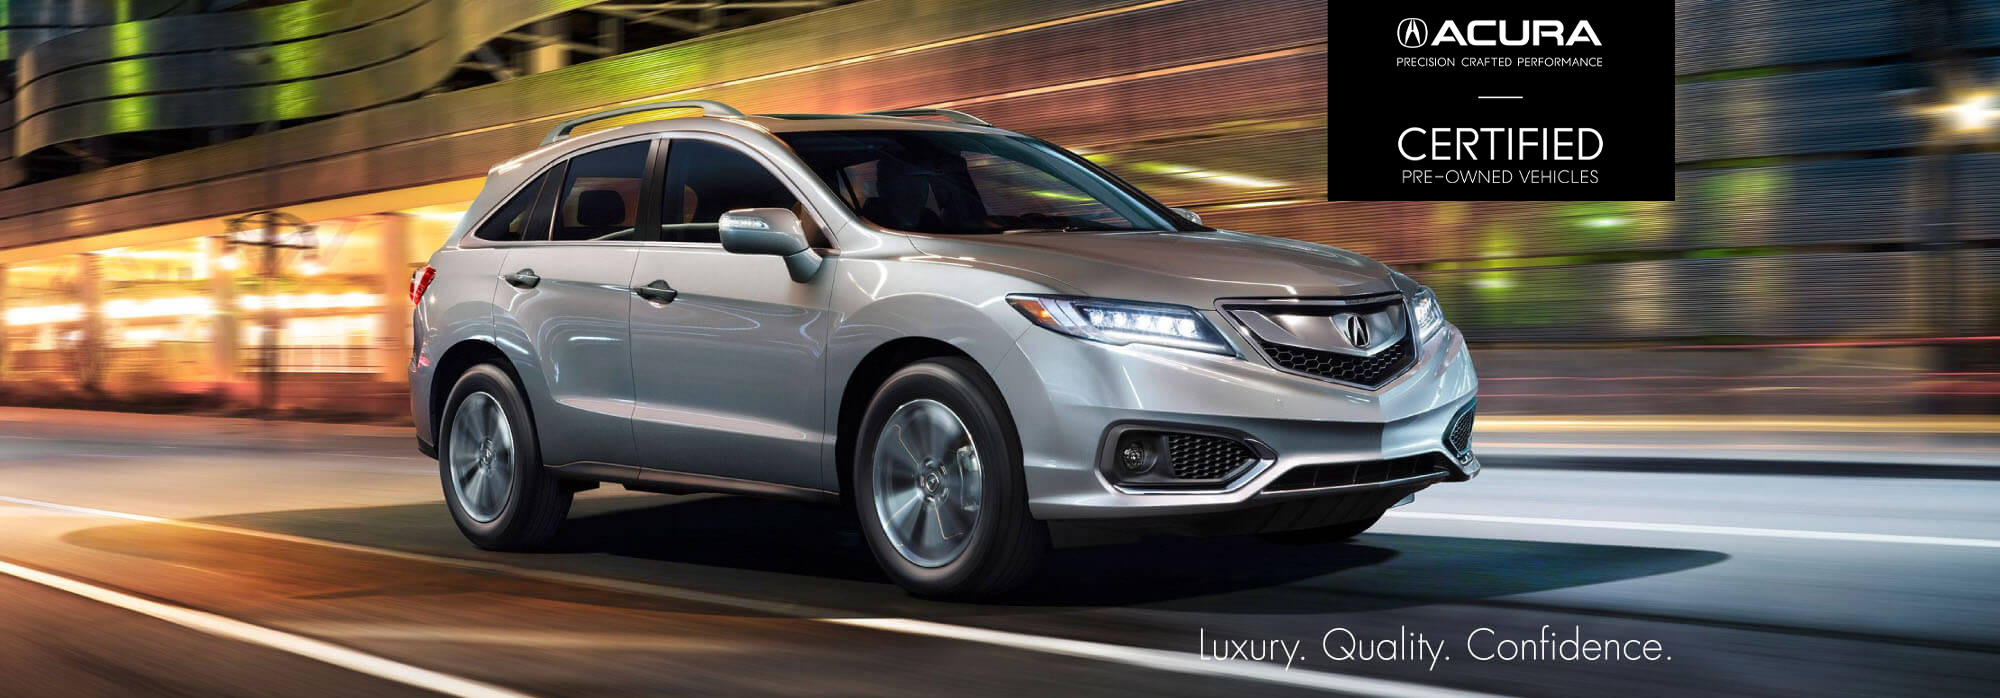 acura certified pre owned roadside assistance